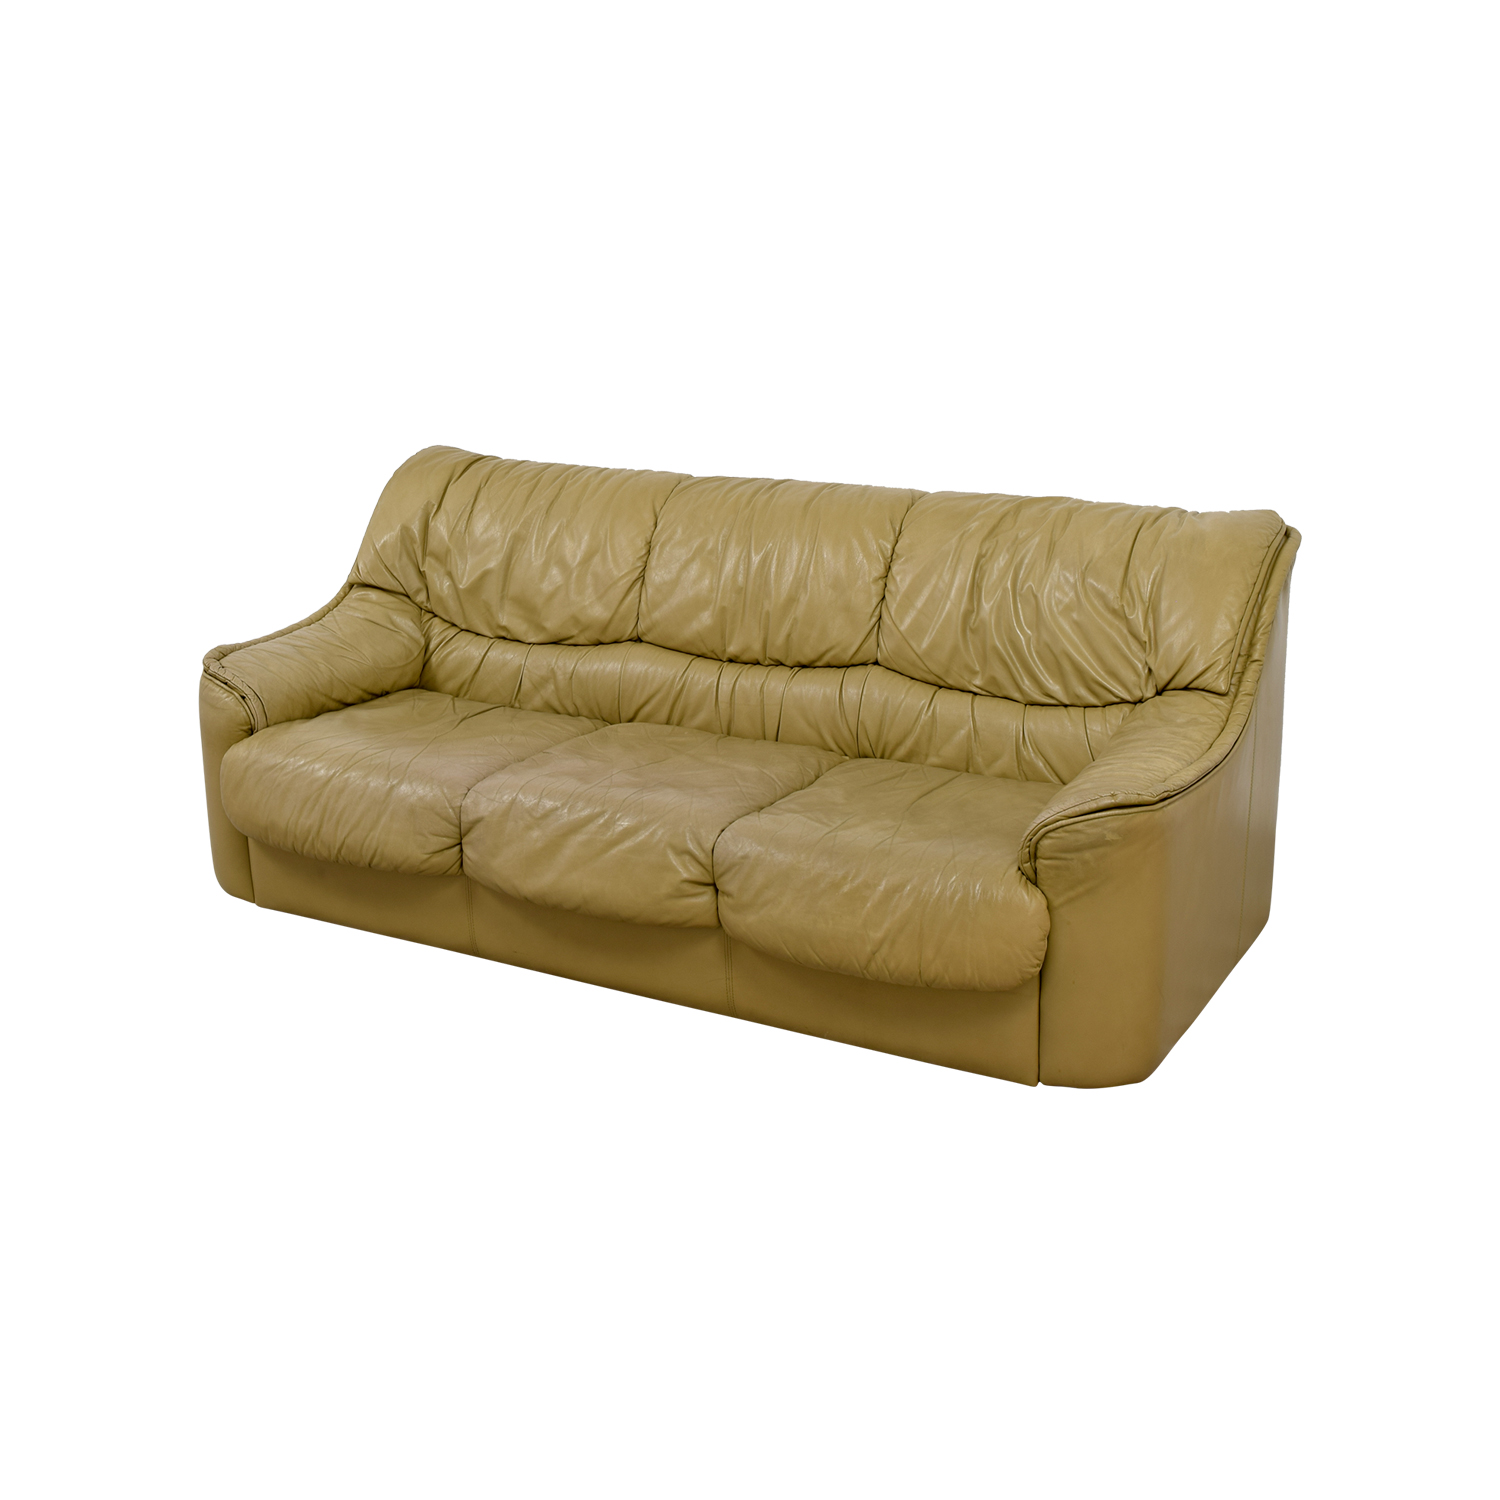 90 Off Beige Leather Sofa Sofas